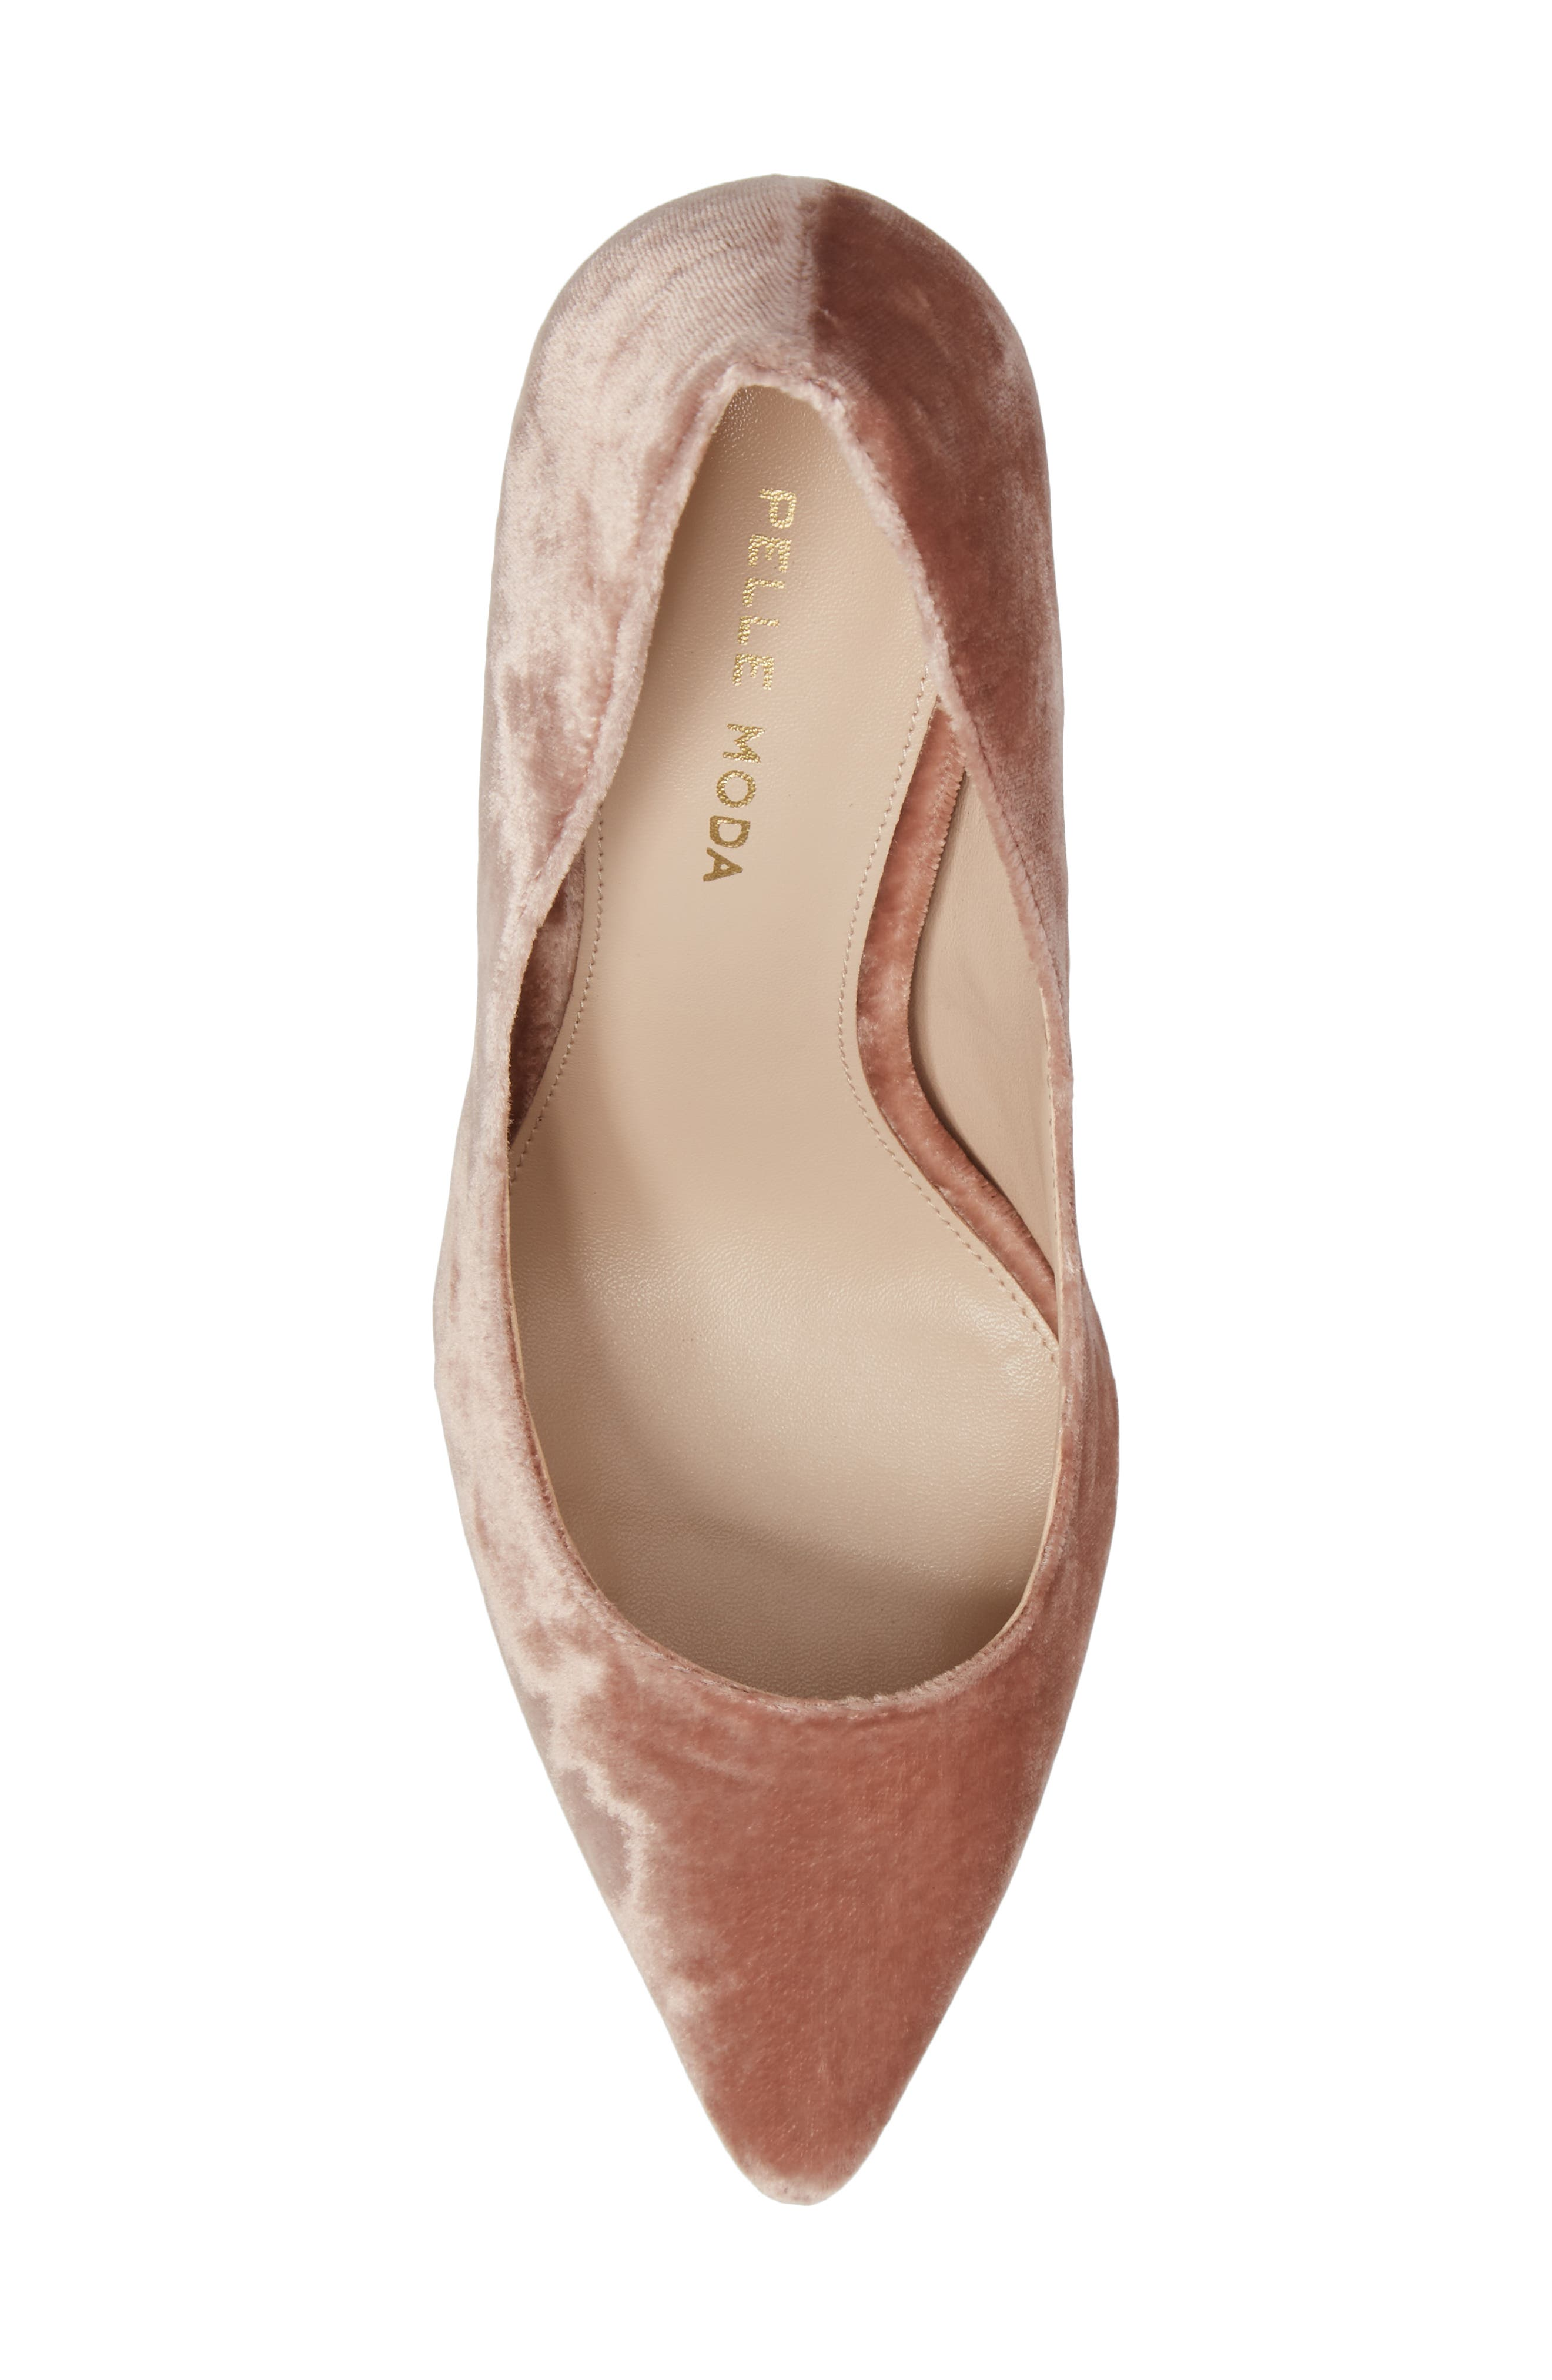 Vally2 Pointy Toe Pump,                             Alternate thumbnail 5, color,                             650